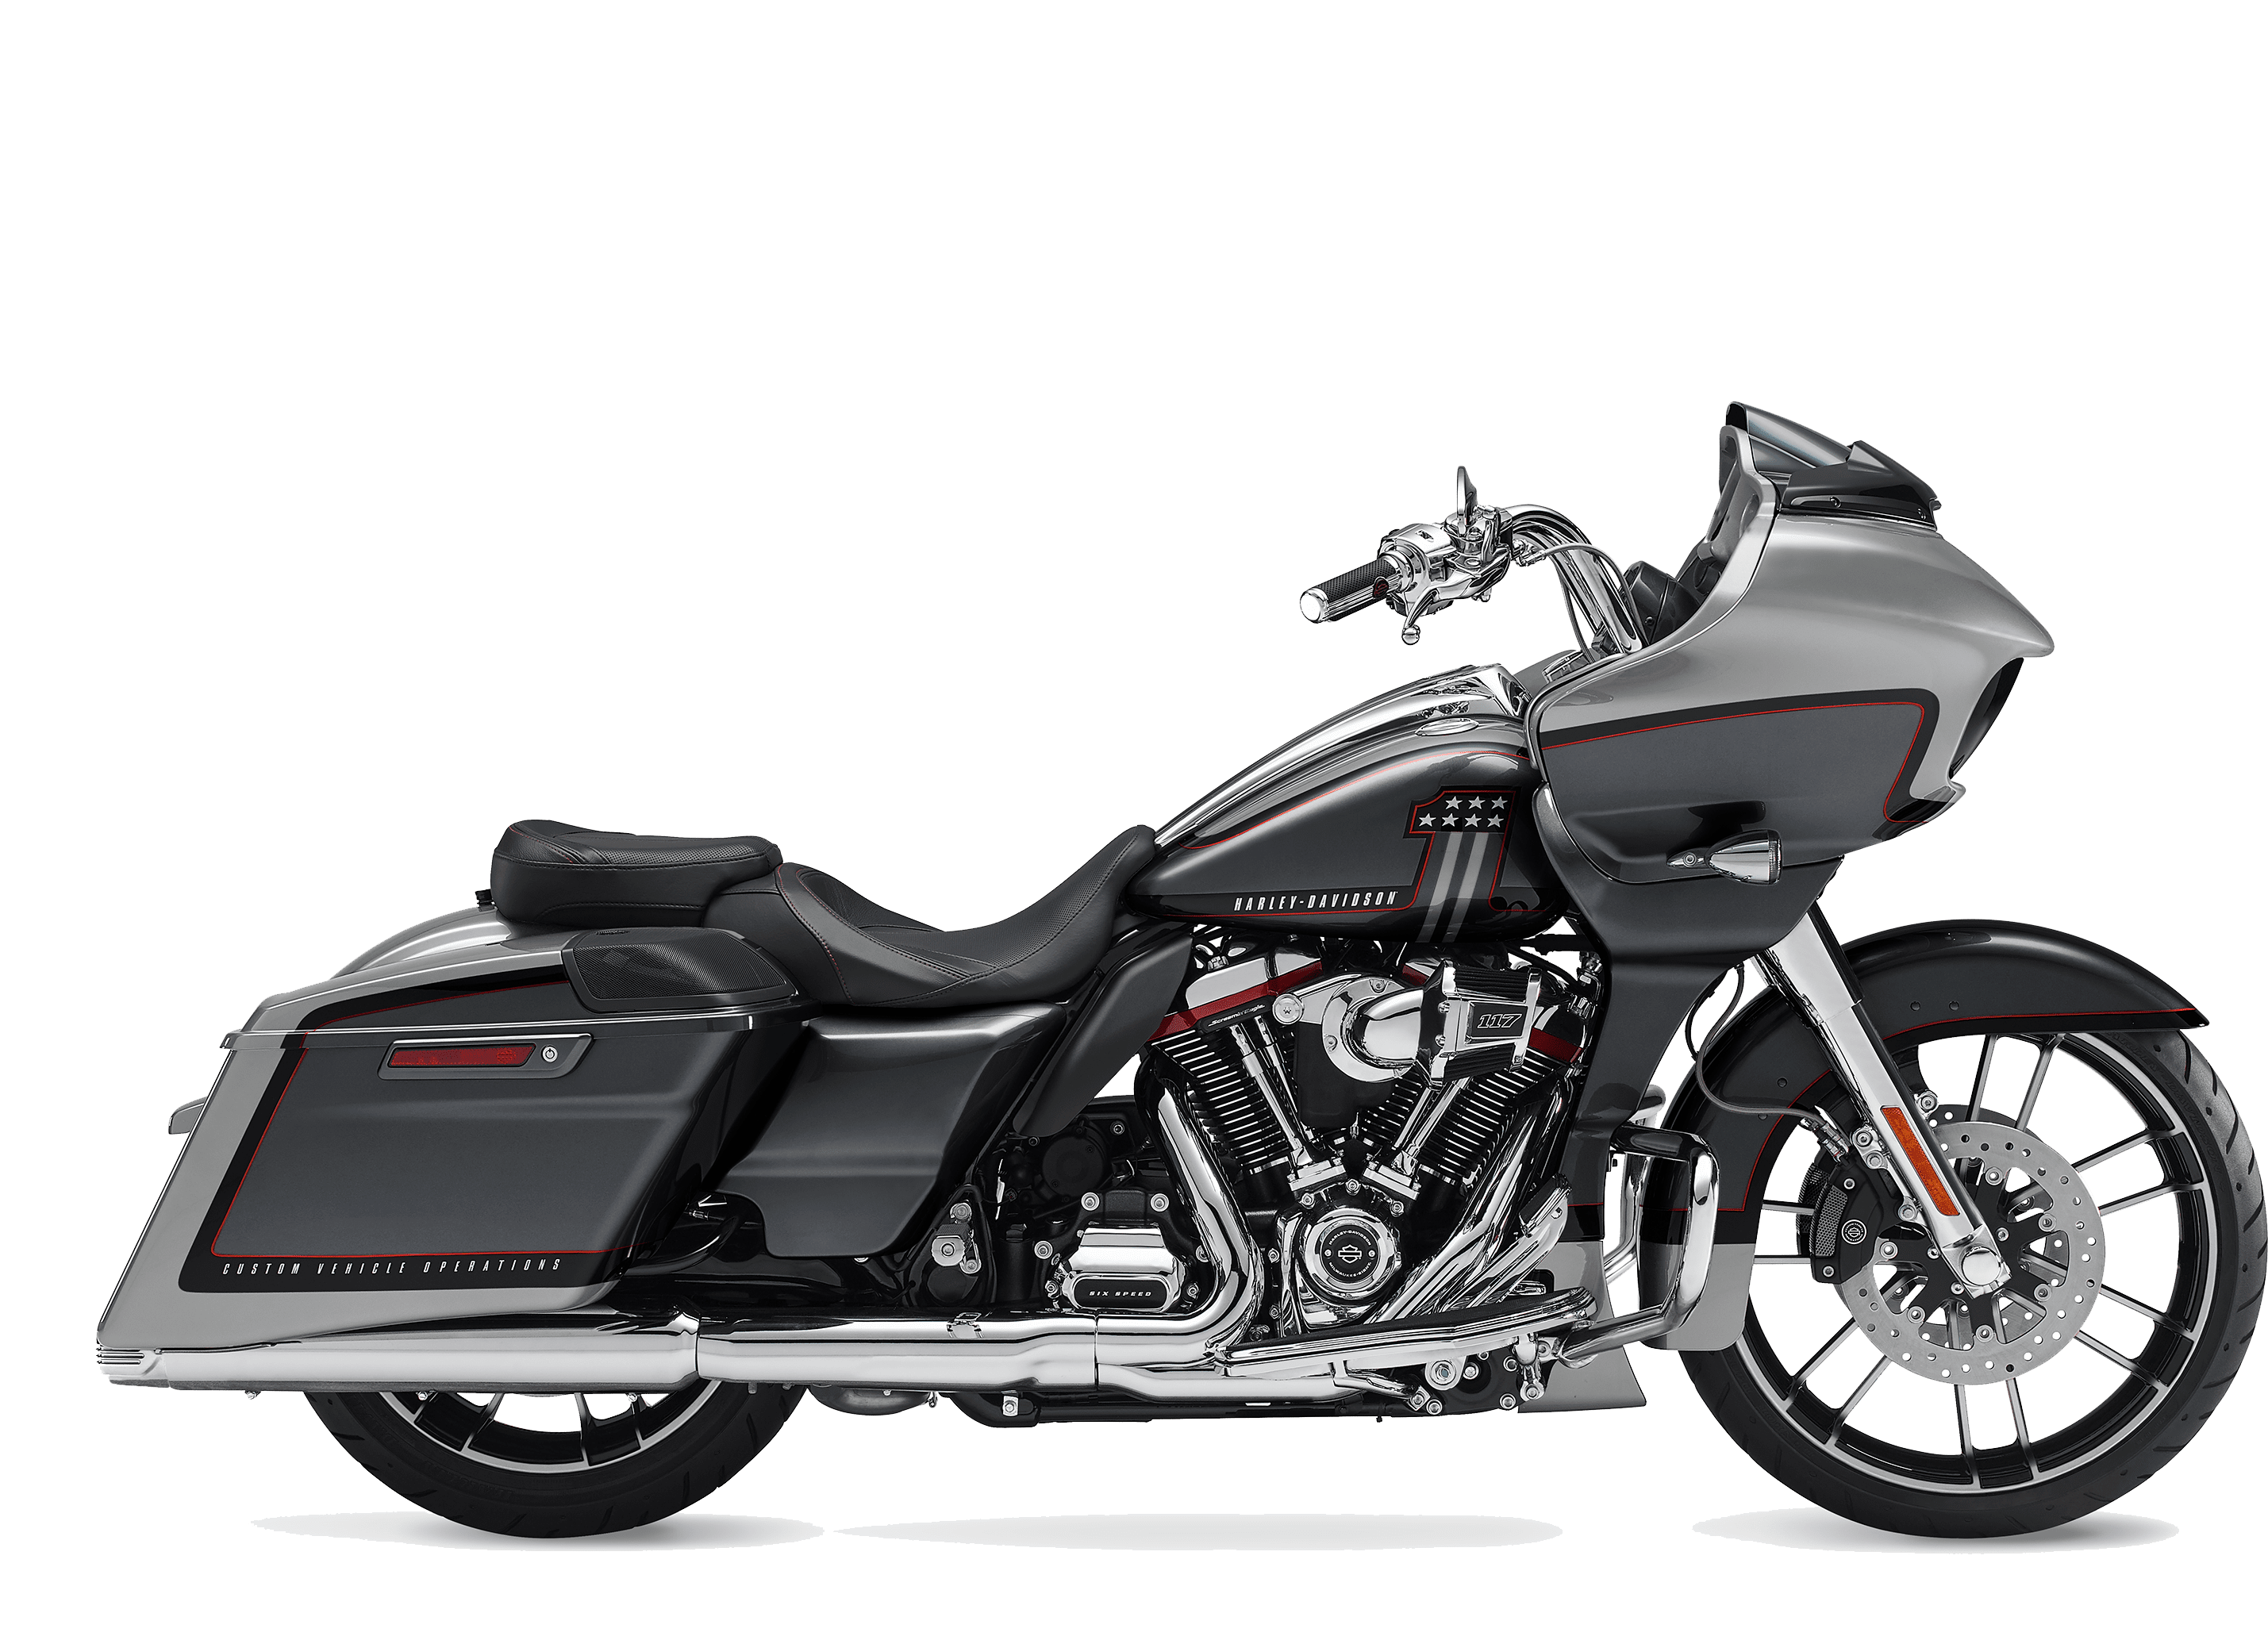 2019 Harley-Davidson H-D CVO Road Glide Lighting Silver and Charred Steel with Black Hole